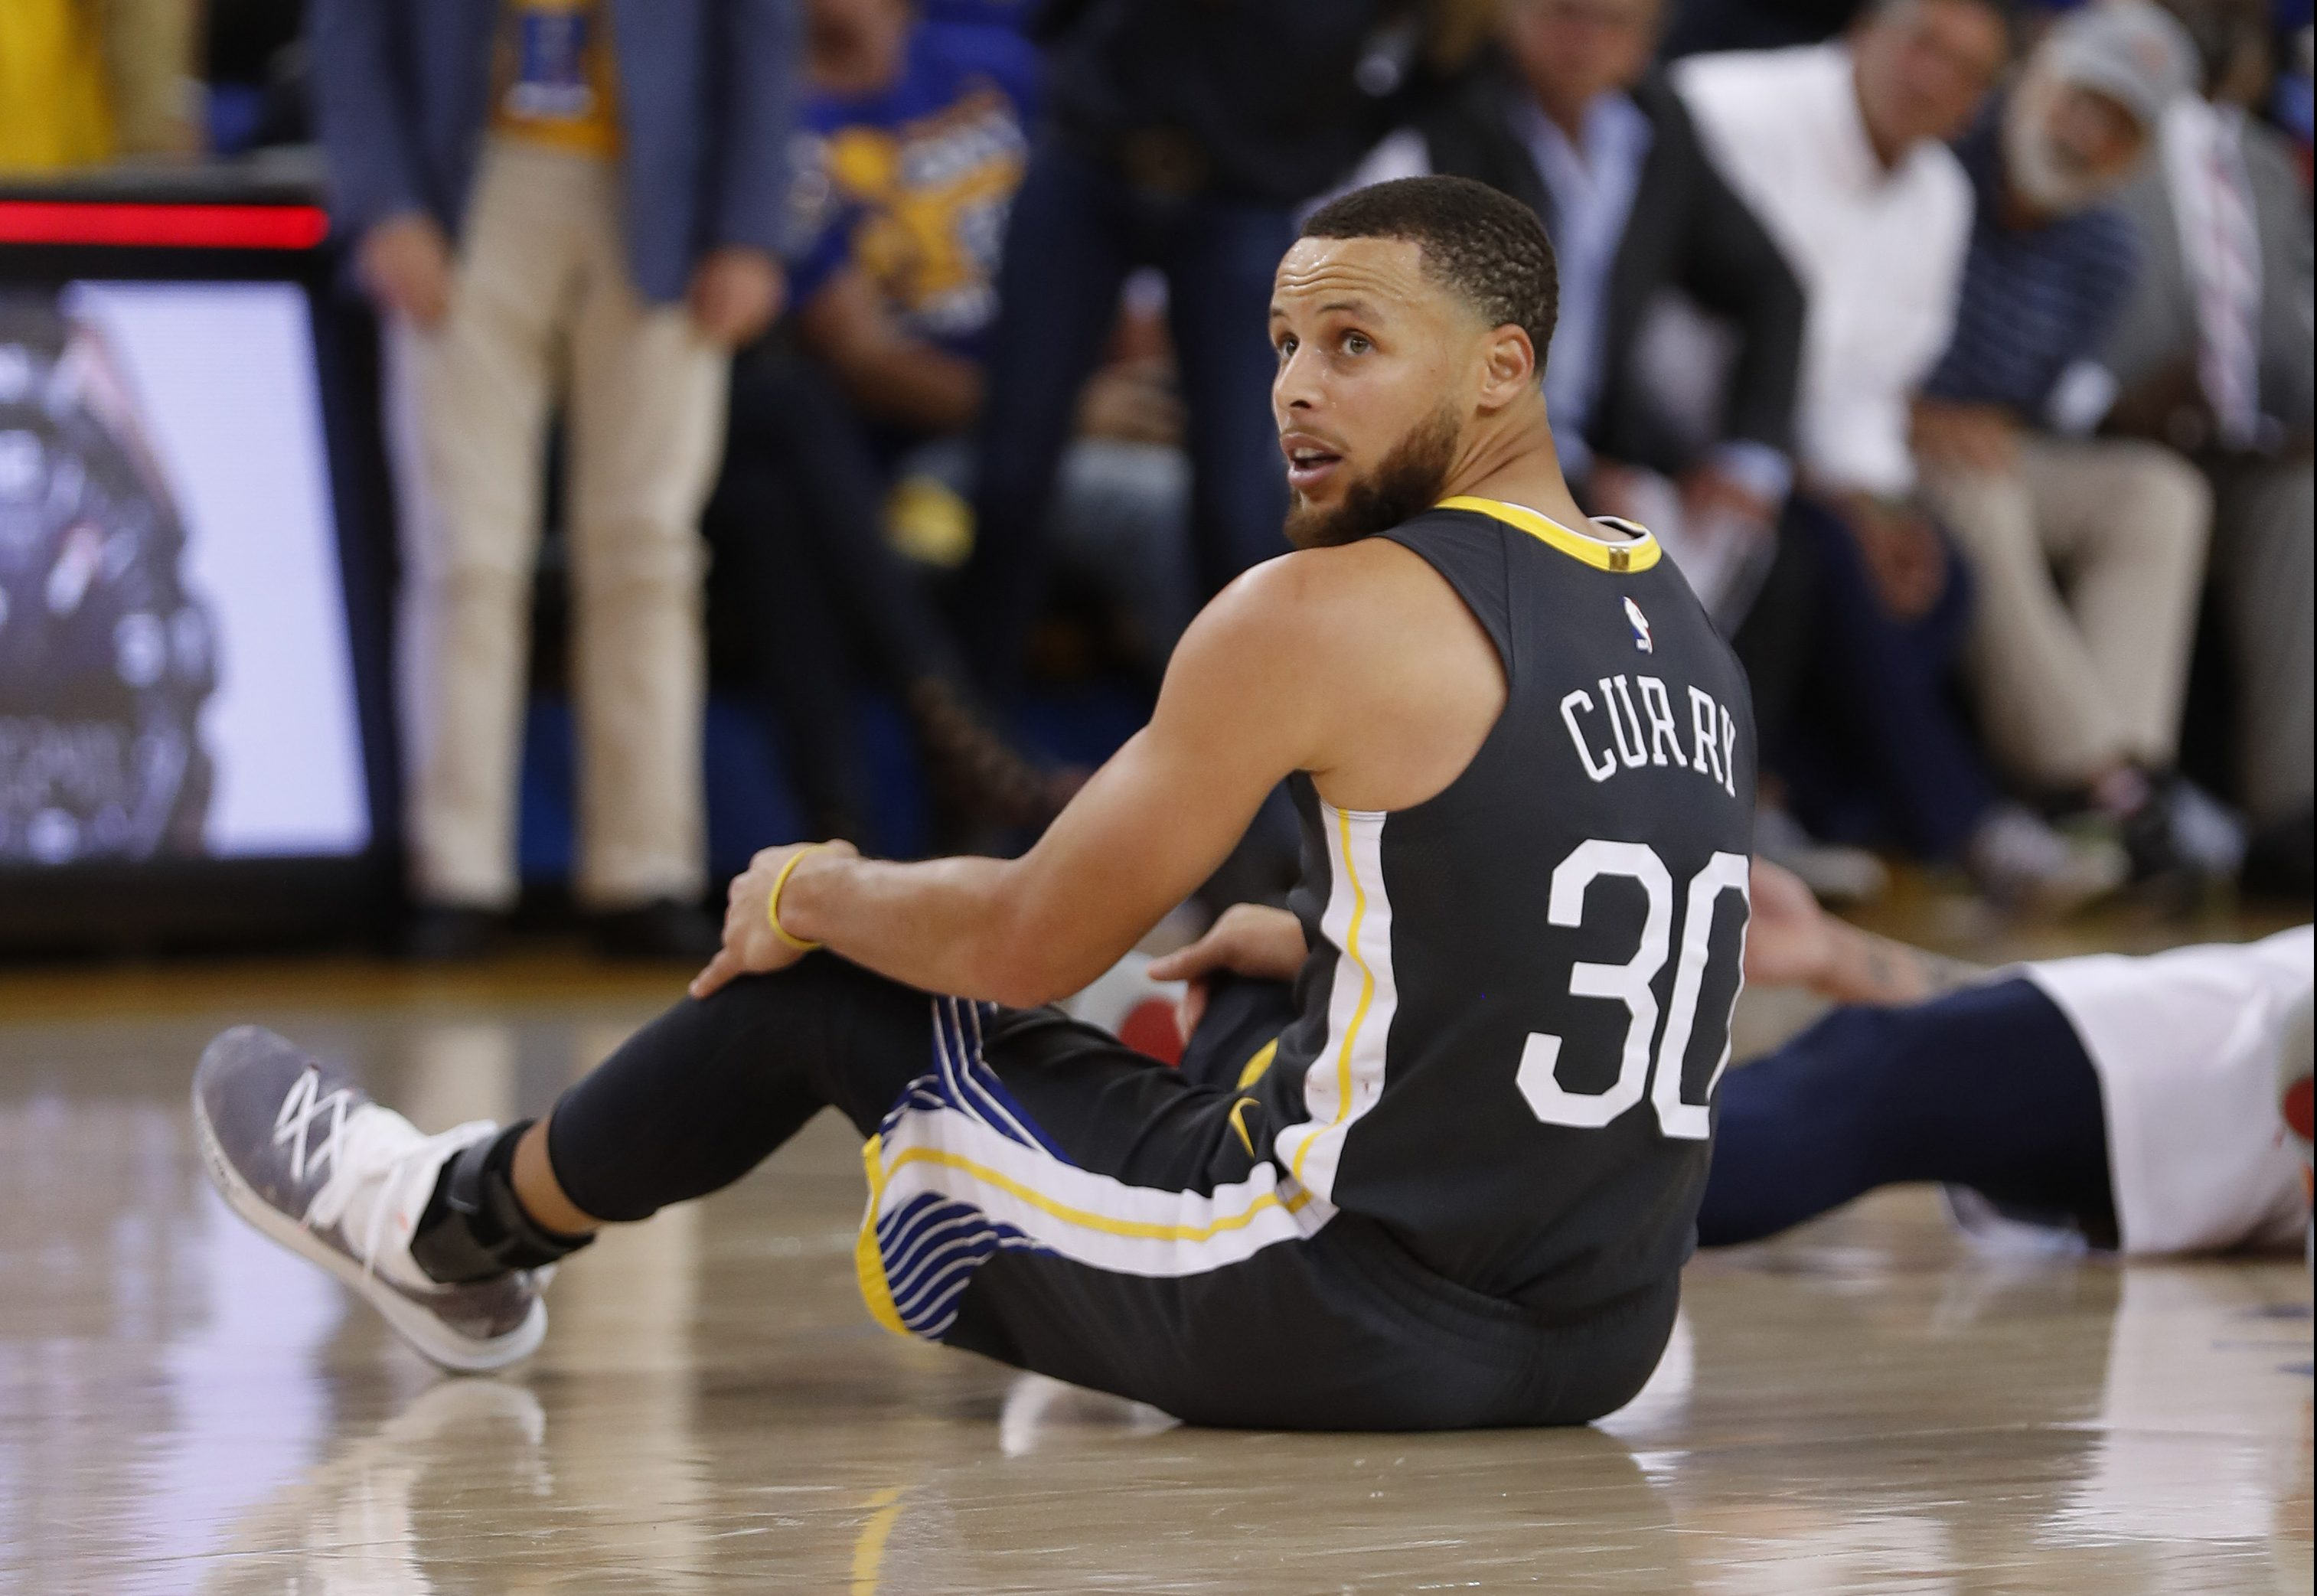 Warriors star Curry to start Game 3 against Pelicans